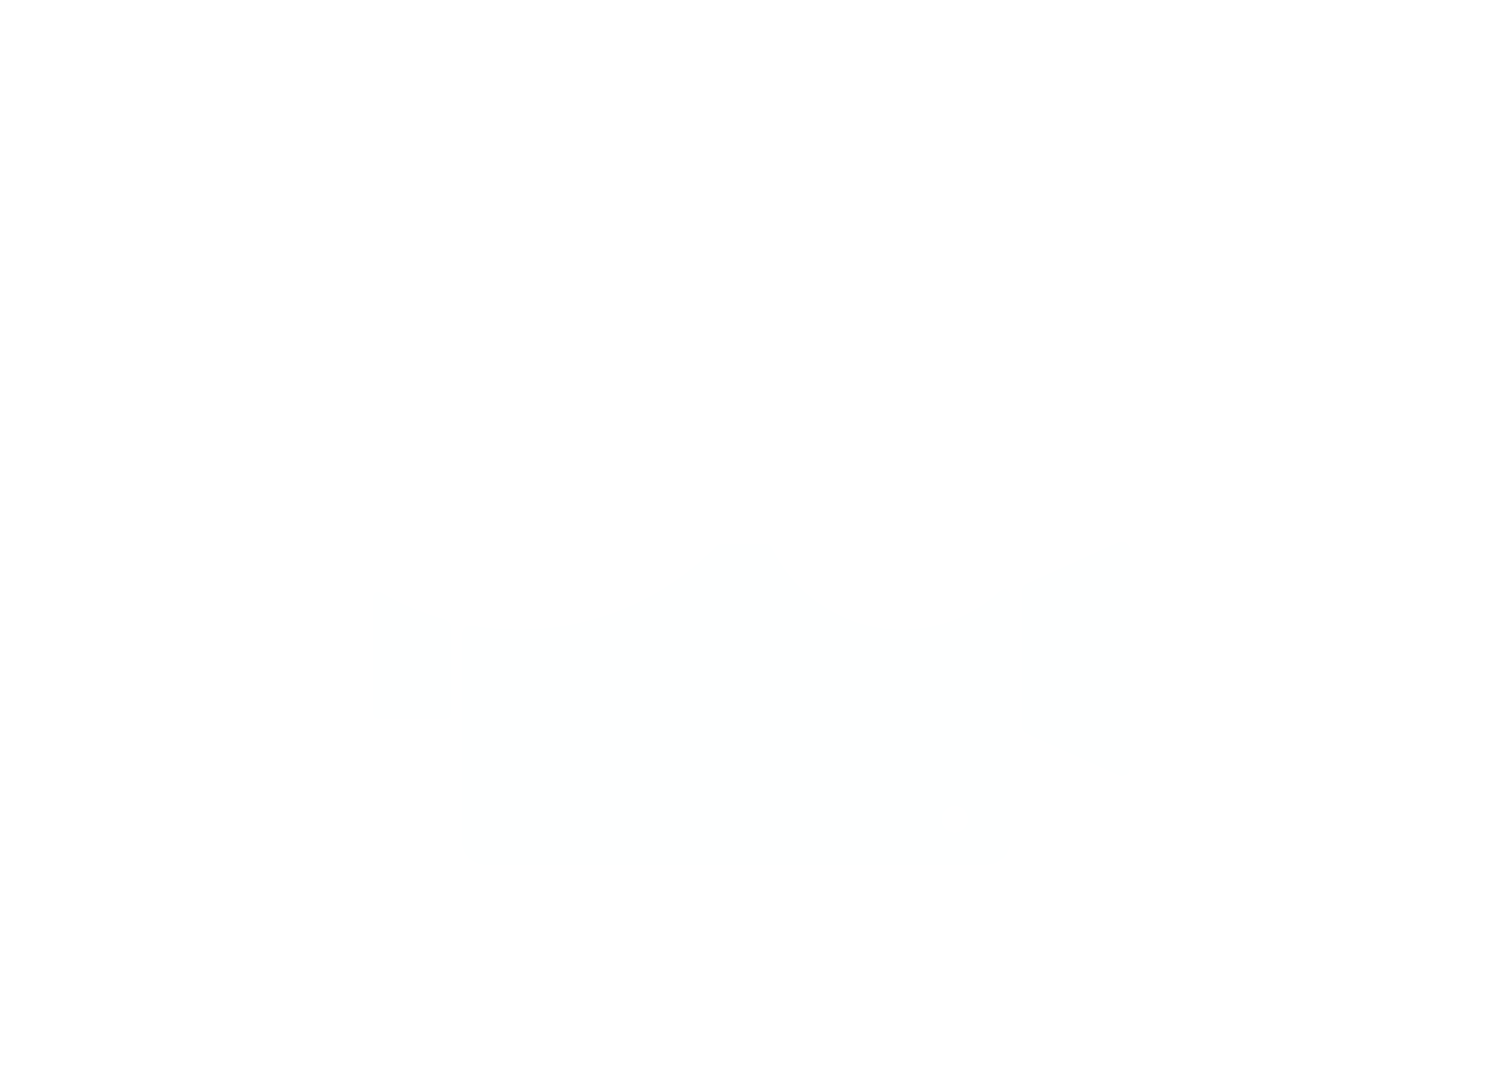 Soulmate cheng cheng films cheng cheng films biocorpaavc Images